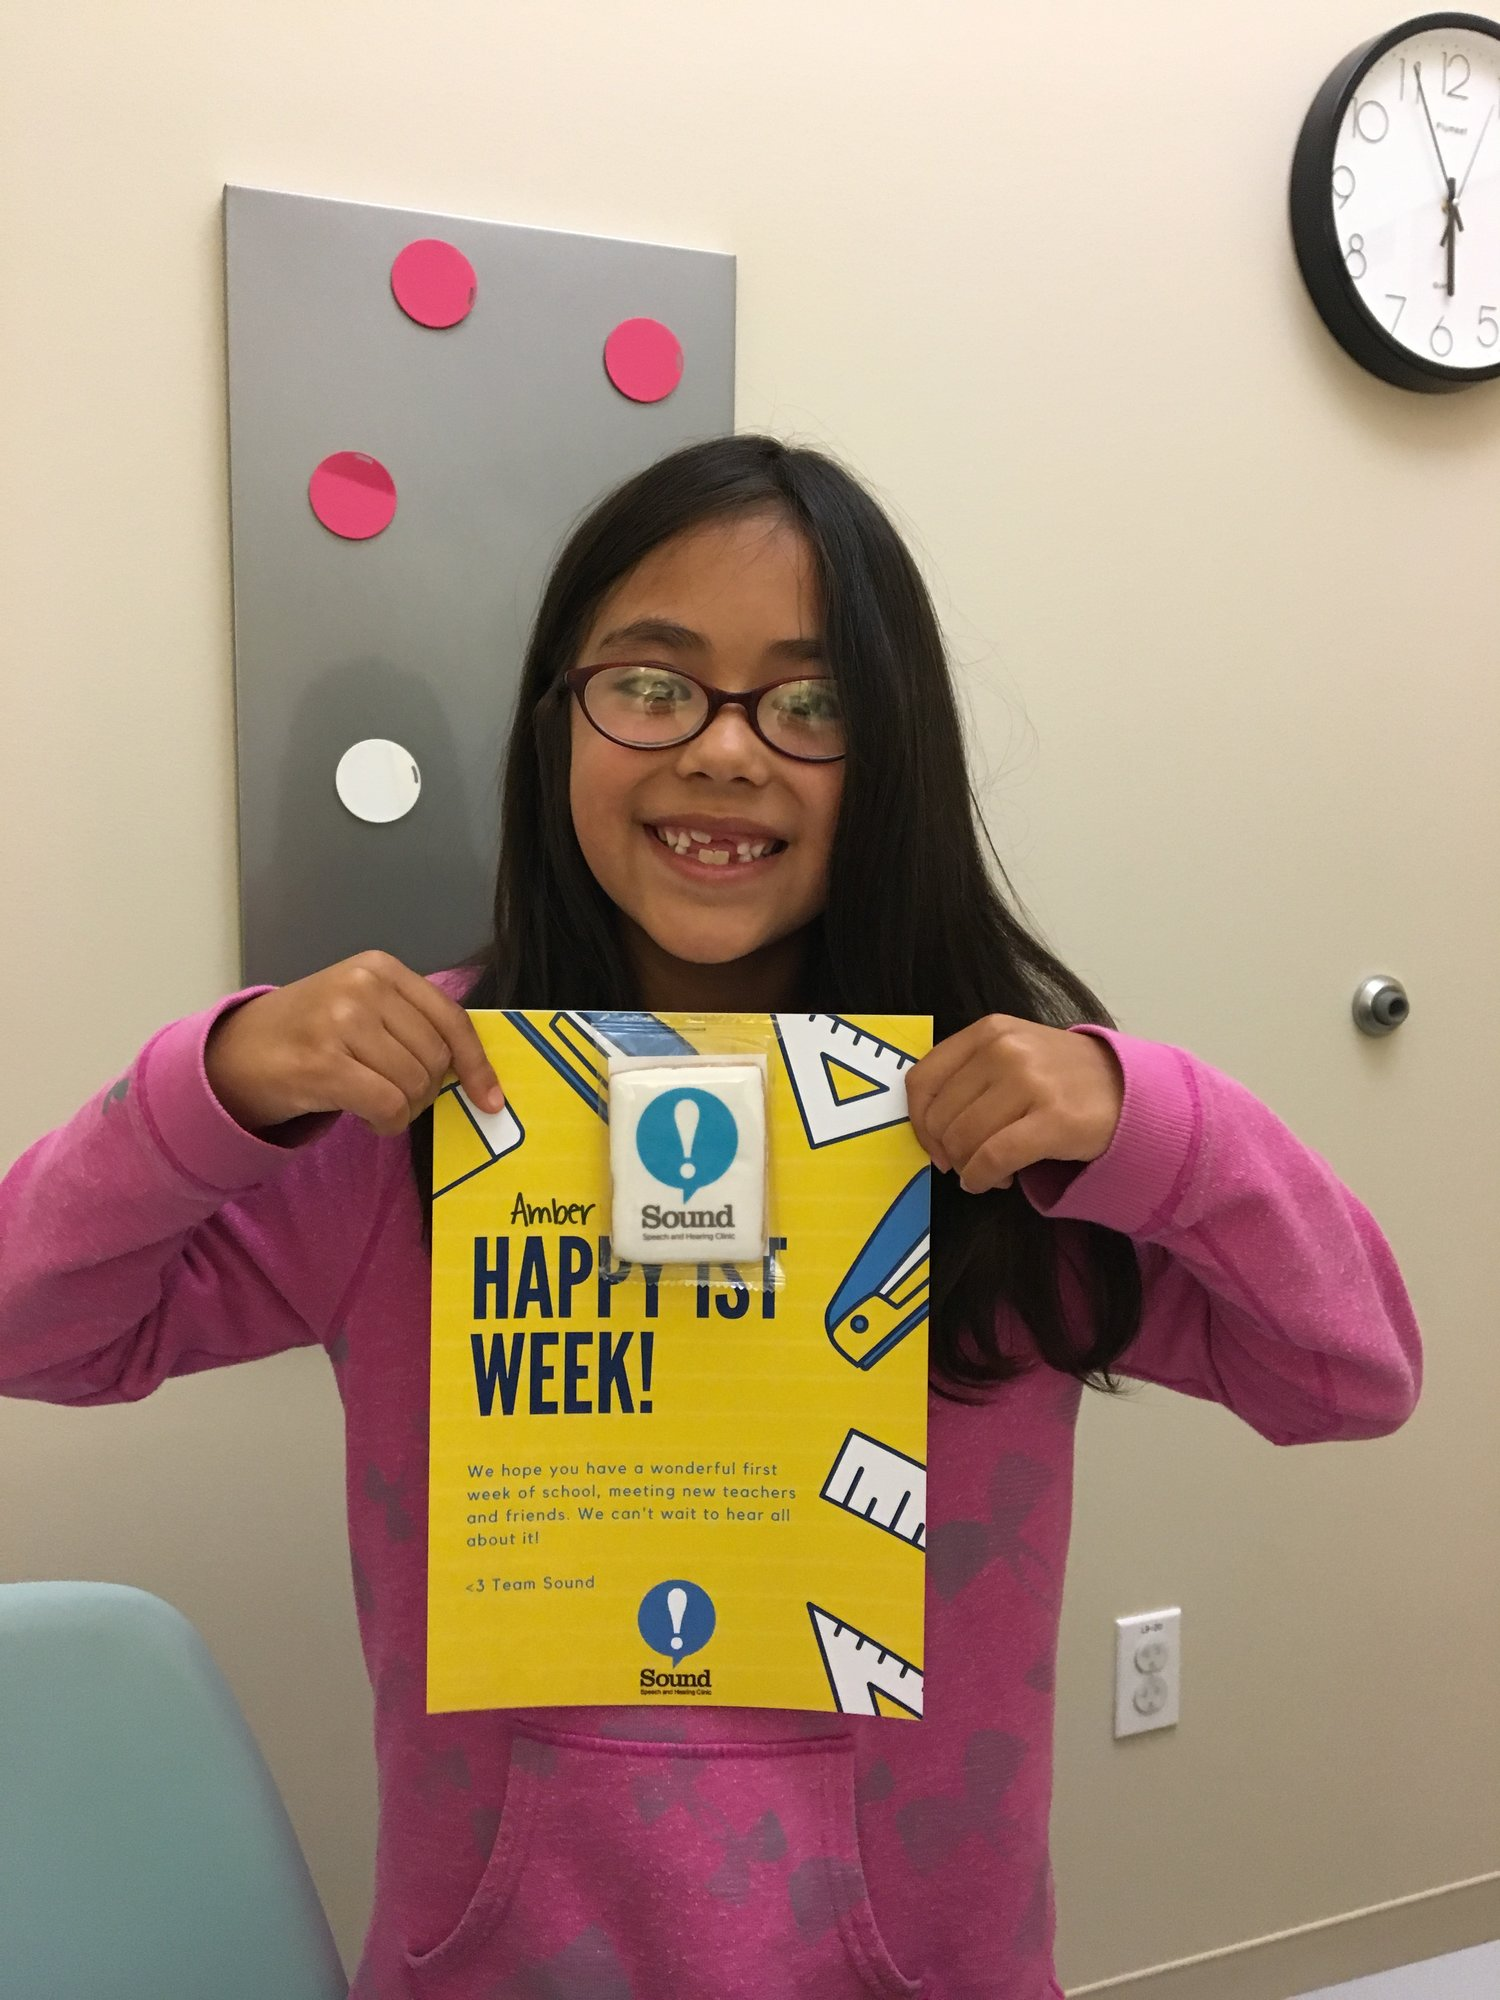 Happy First Week! — Sound Speech and Hearing Clinic - San Francisco